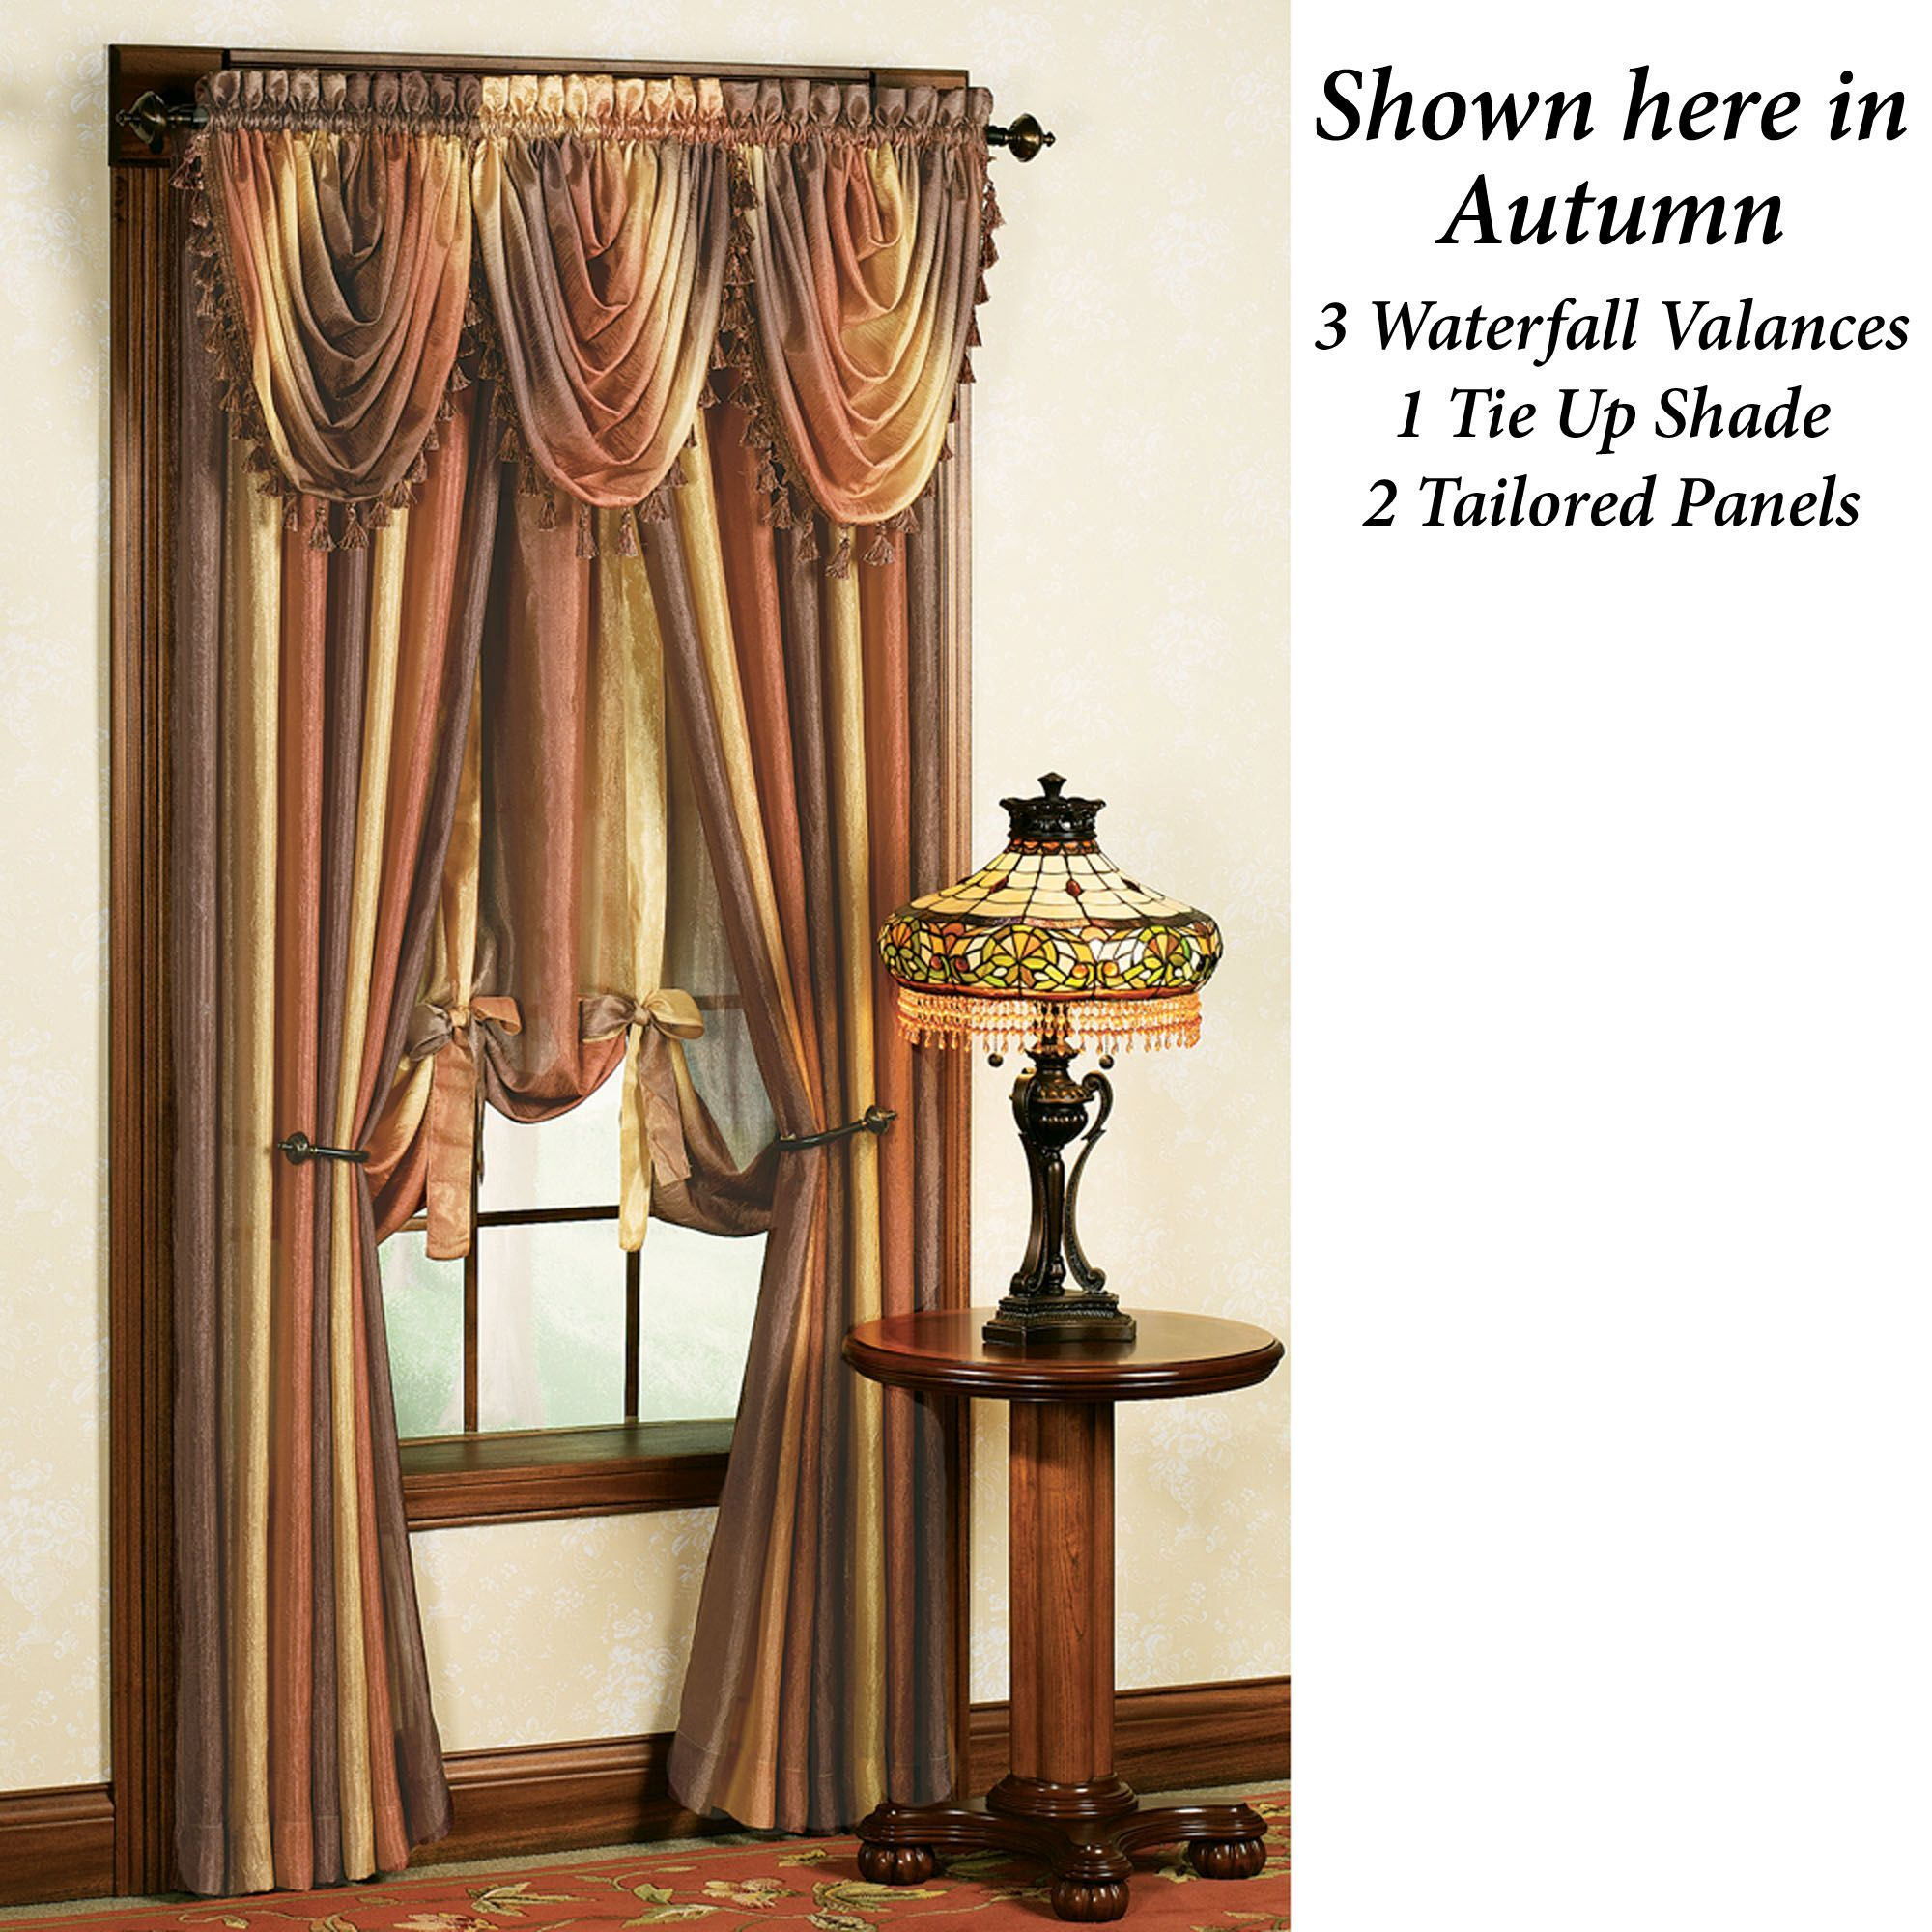 Ombre SemiSheer Waterfall Valances